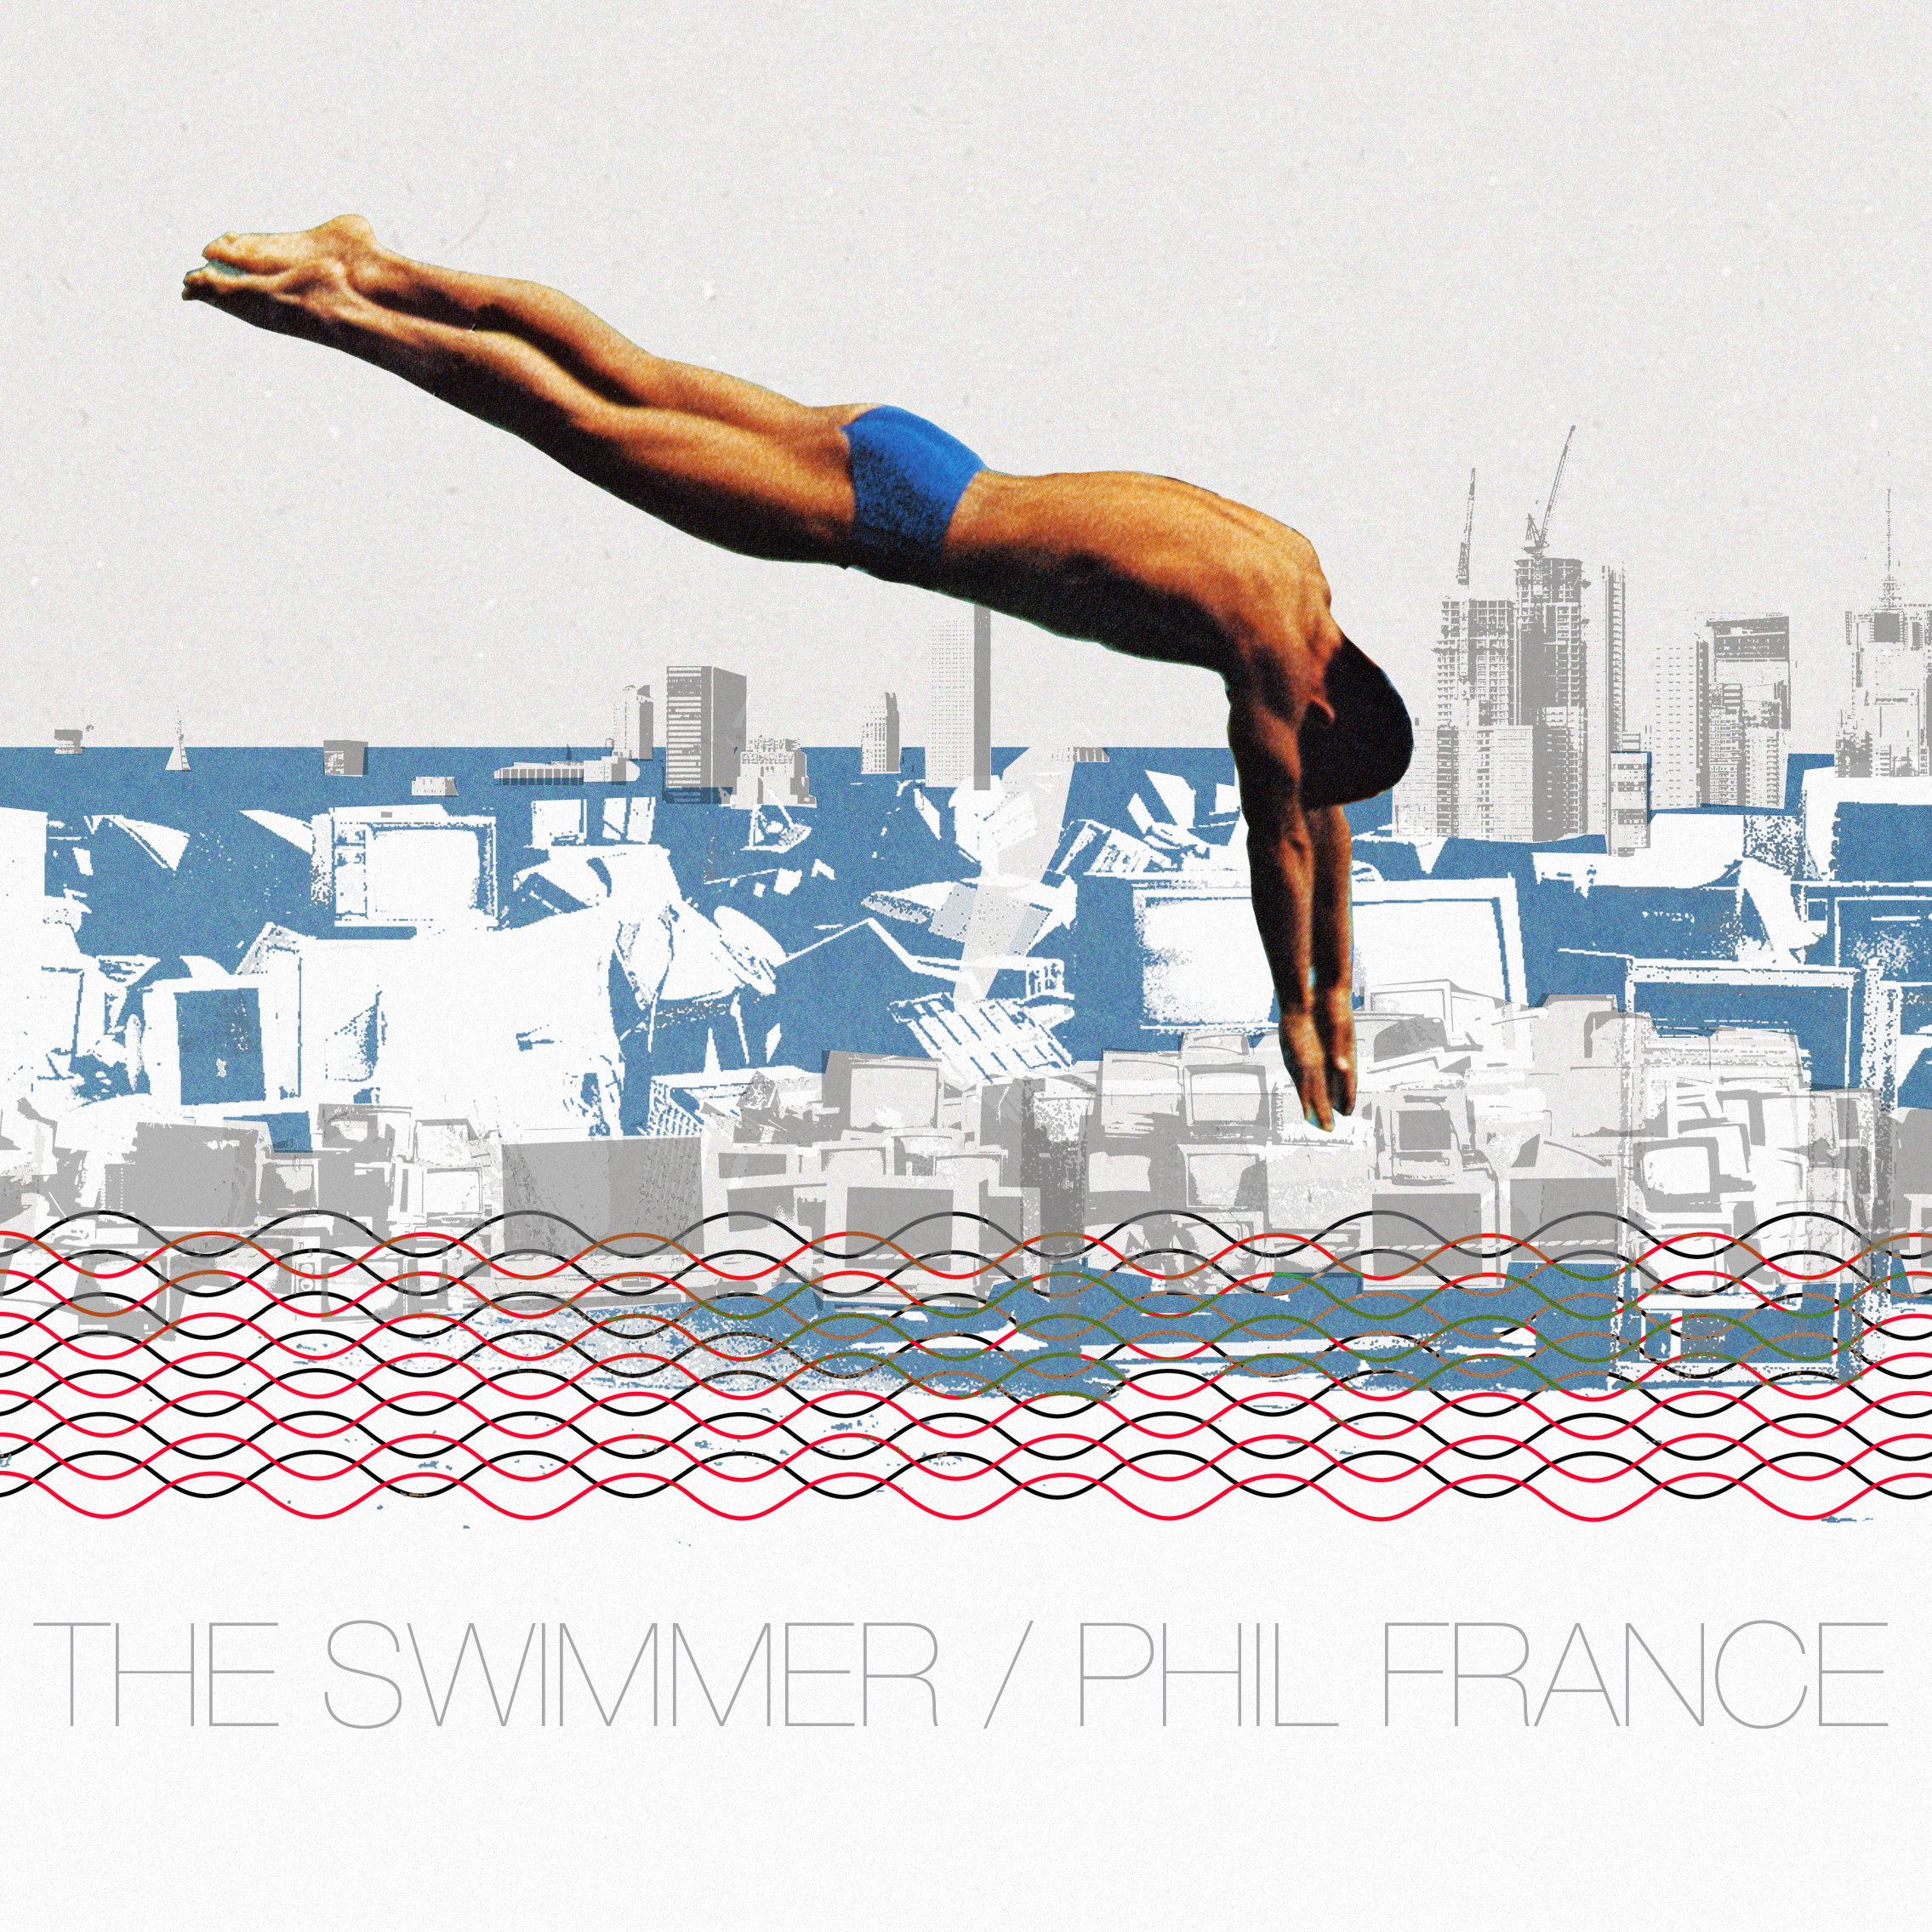 Order new signing Phil France's debut album The Swimmer on CD/LP/DL